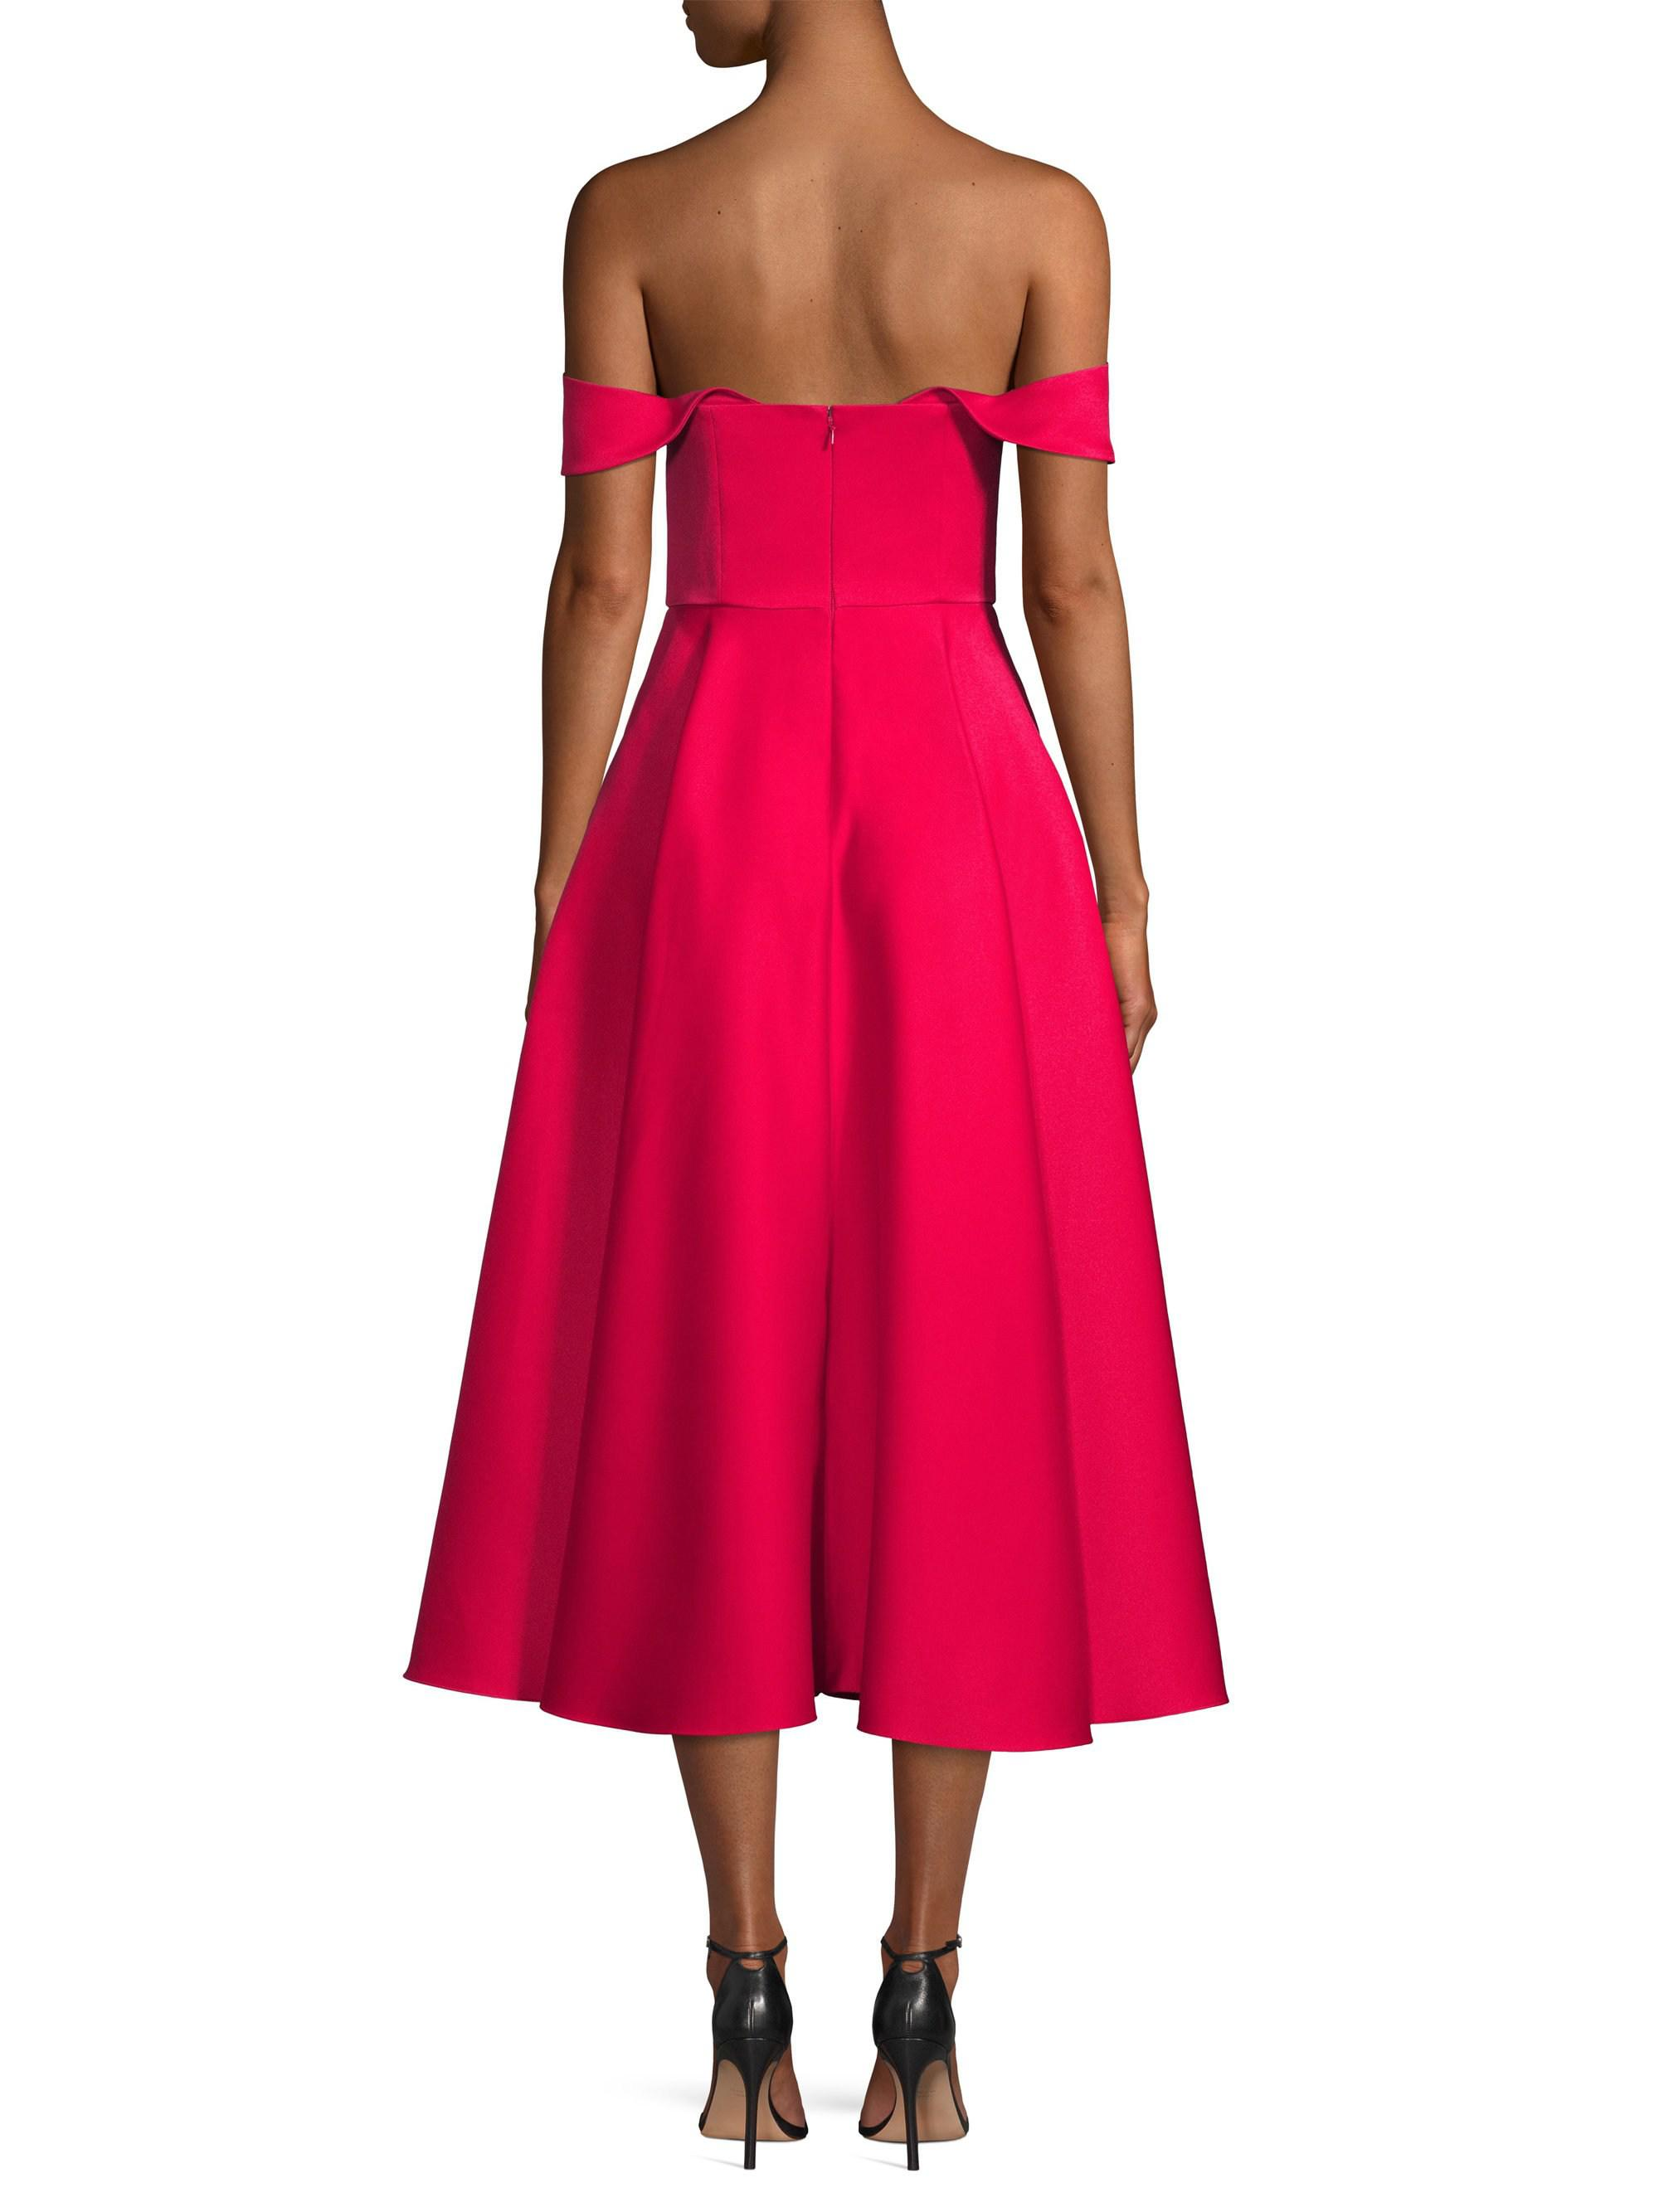 5ef79308896ad Jay Godfrey Charlie Off-the-shoulder Cocktail Dress in Pink - Lyst